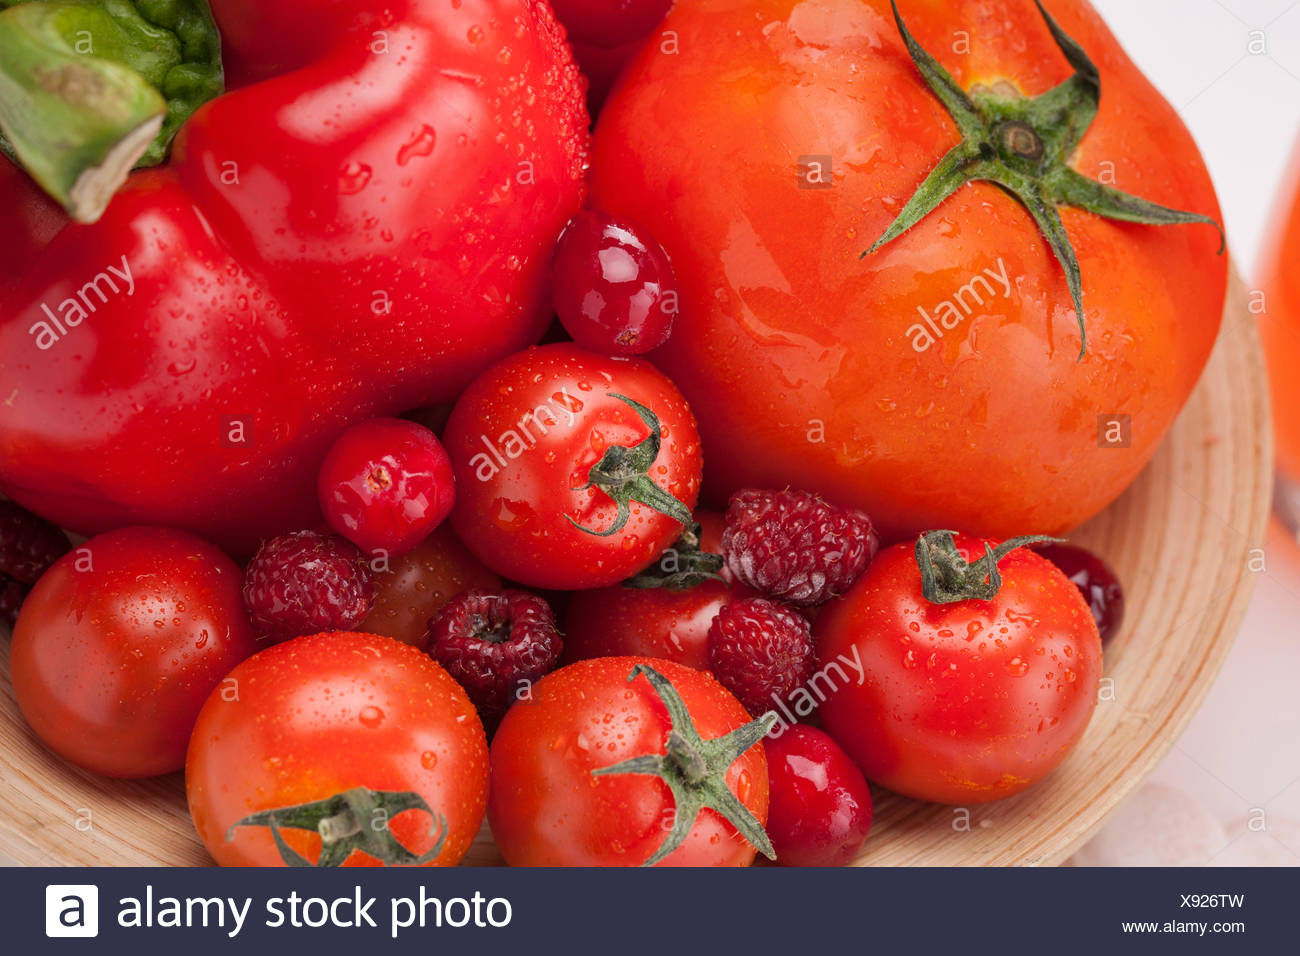 High angle of close-up of combination of red color fruits and vegetables - Stock Image